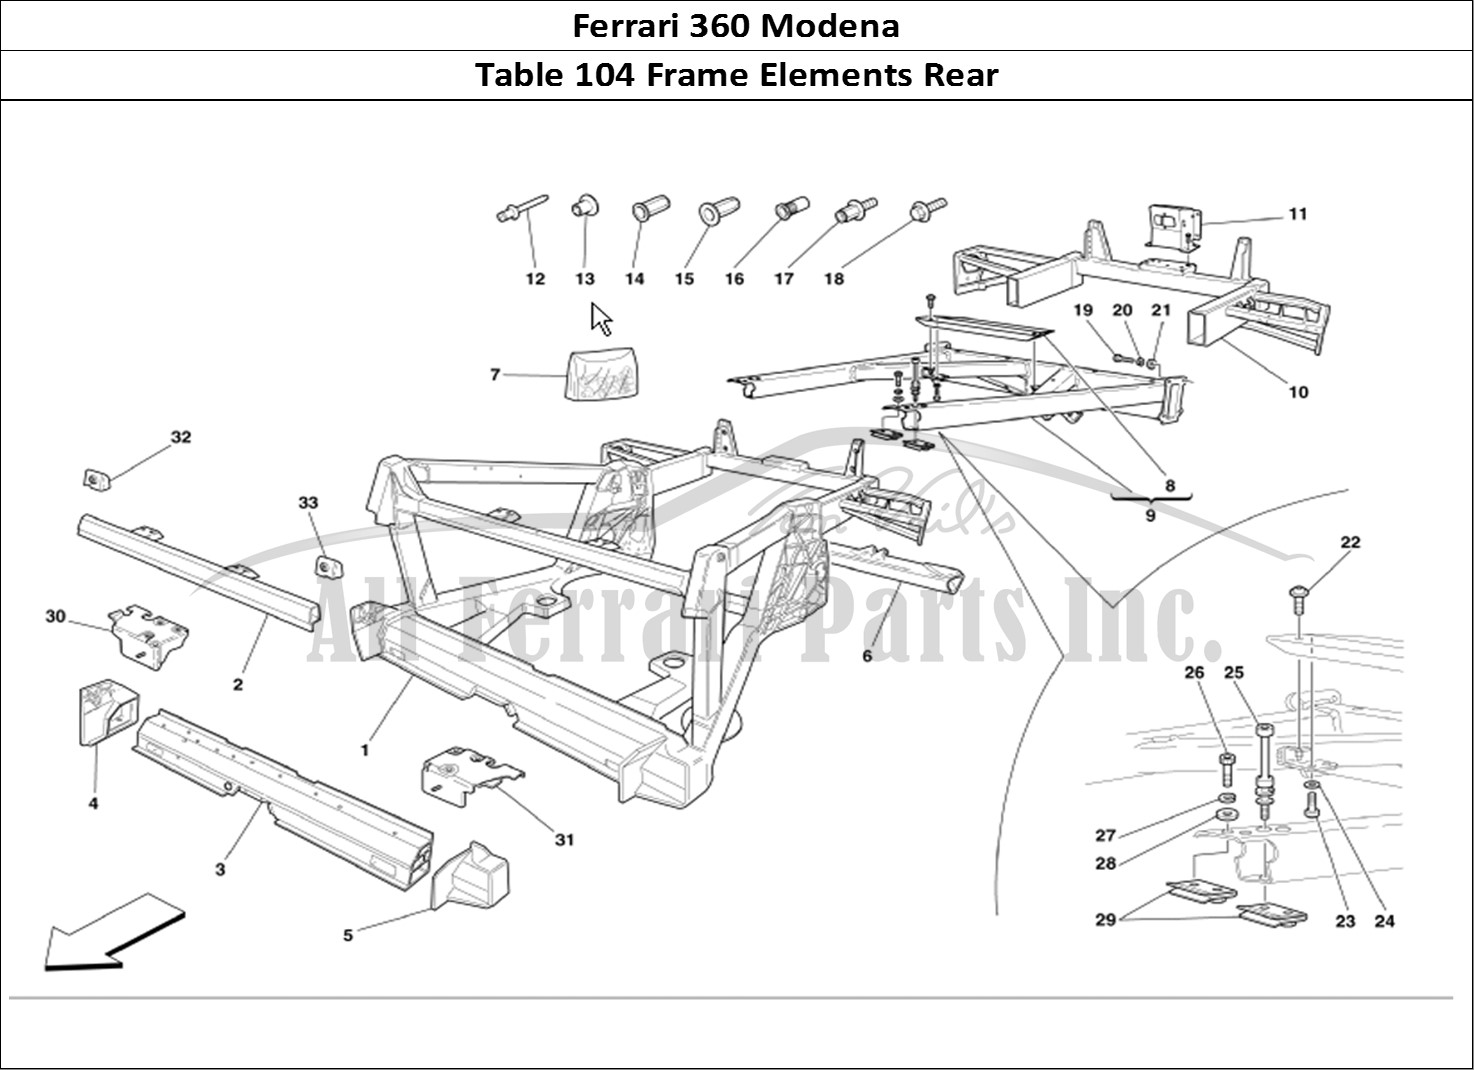 Buy original Ferrari 360 Modena 104 Frame Elements Rear